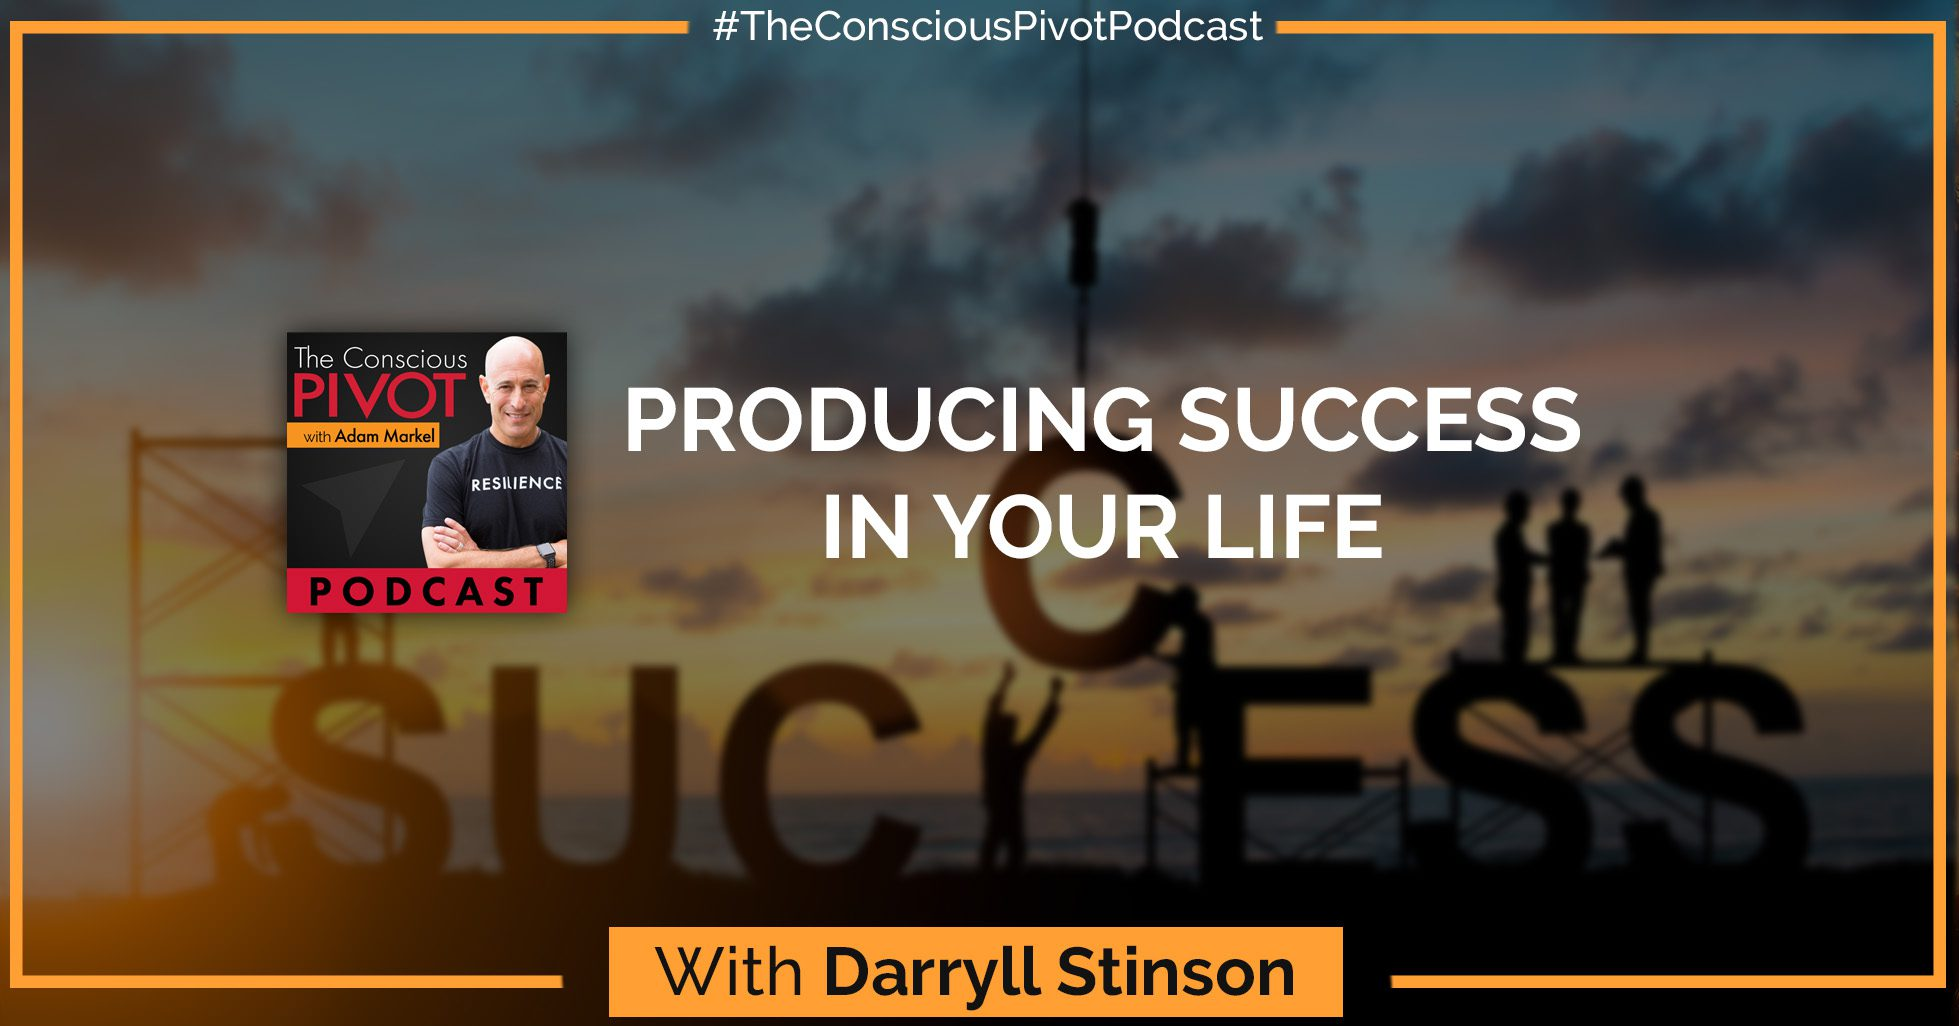 PR Darryll | Producing Success In Life